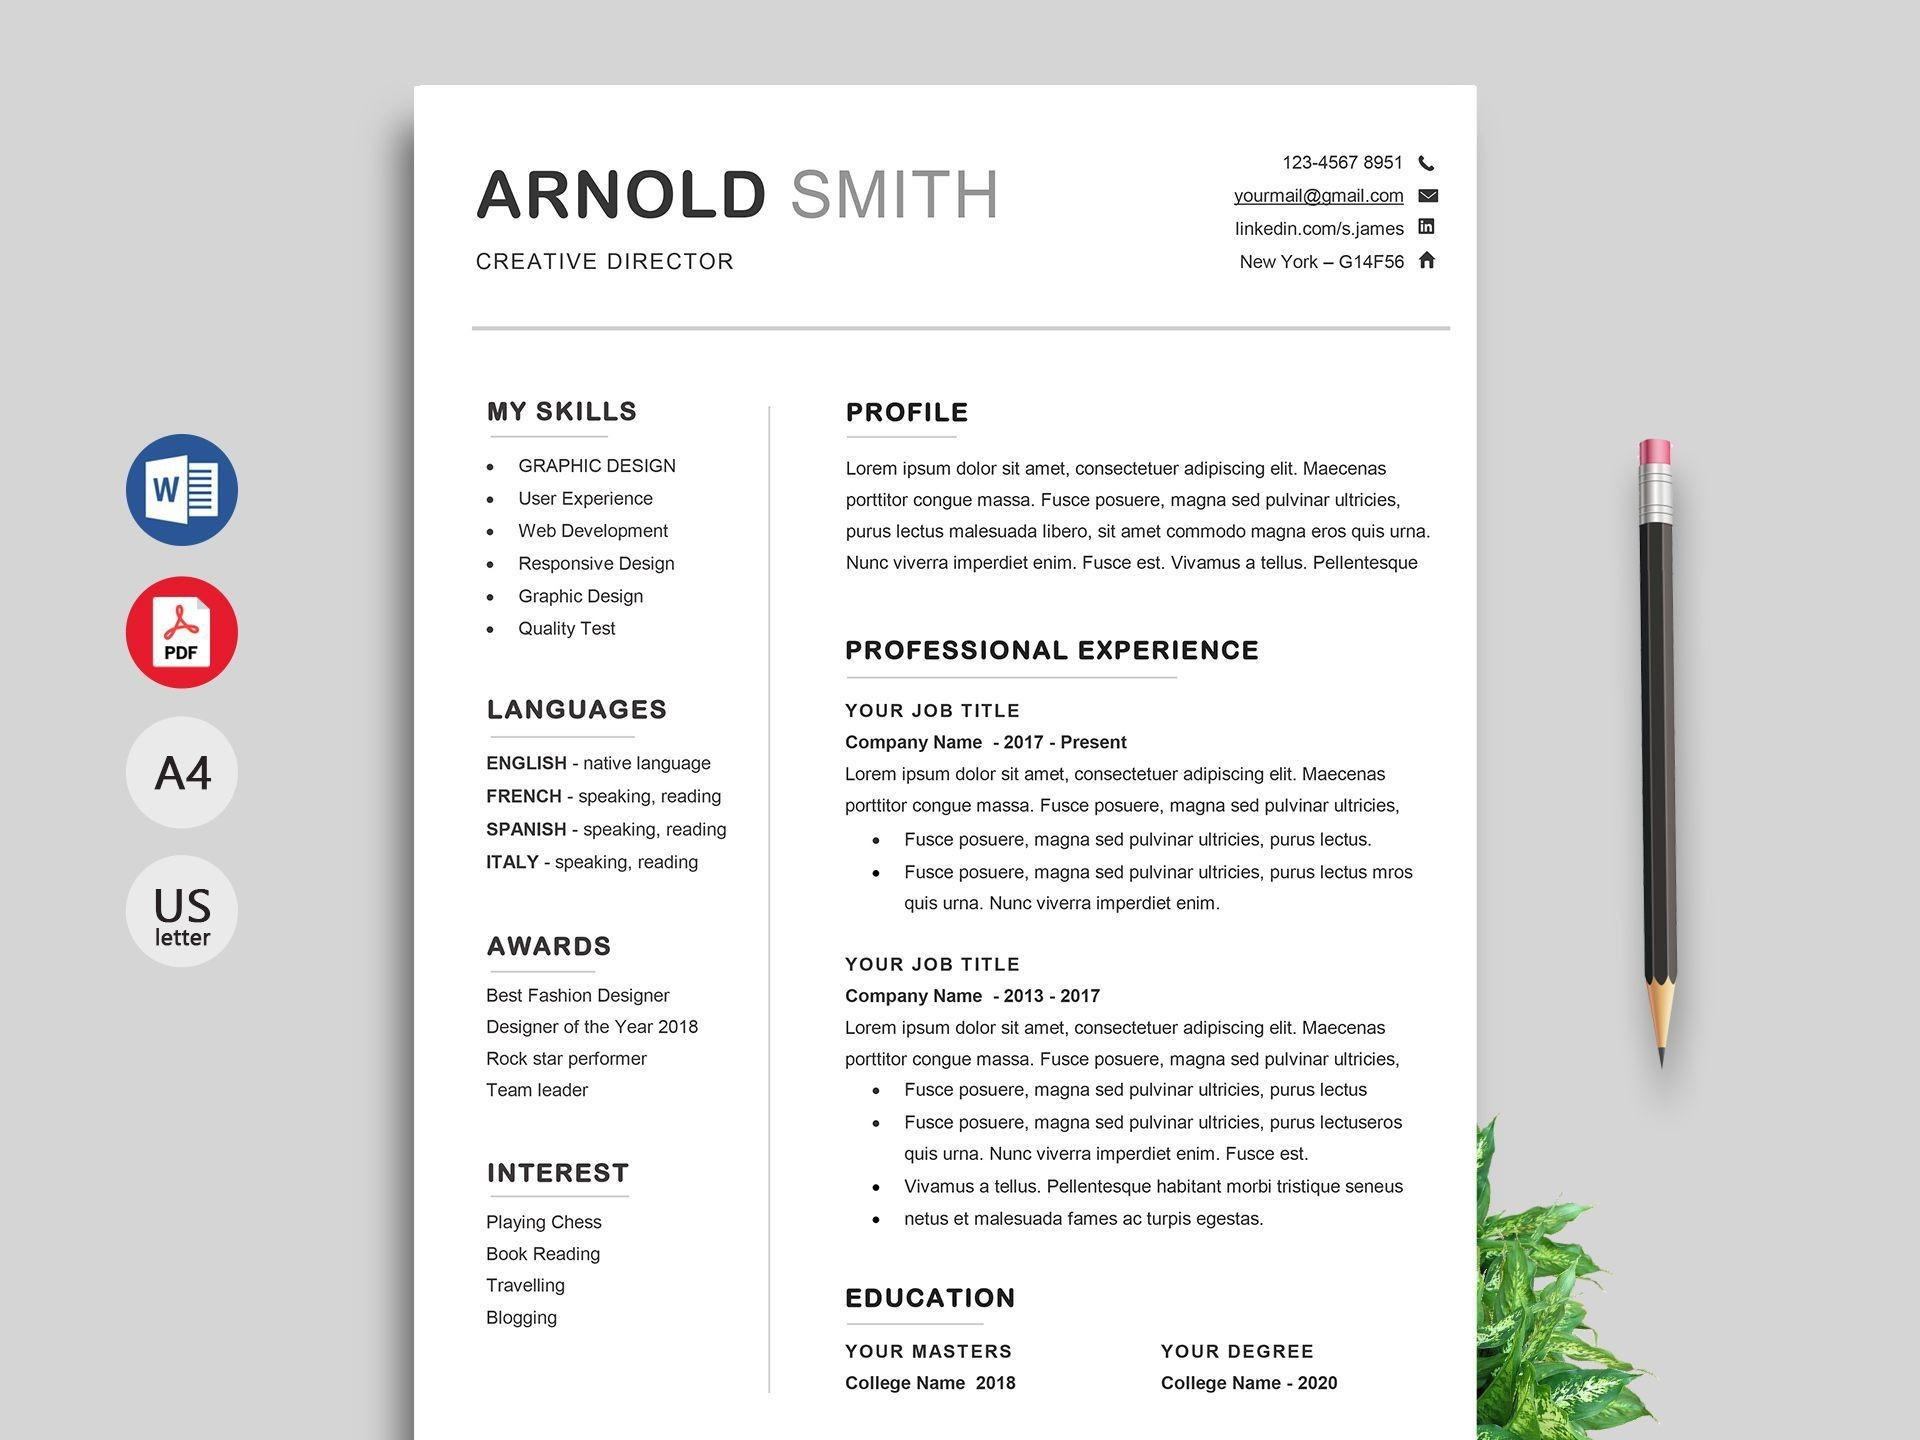 000 Impressive Professional Resume Template 2018 Free Download Idea 1920